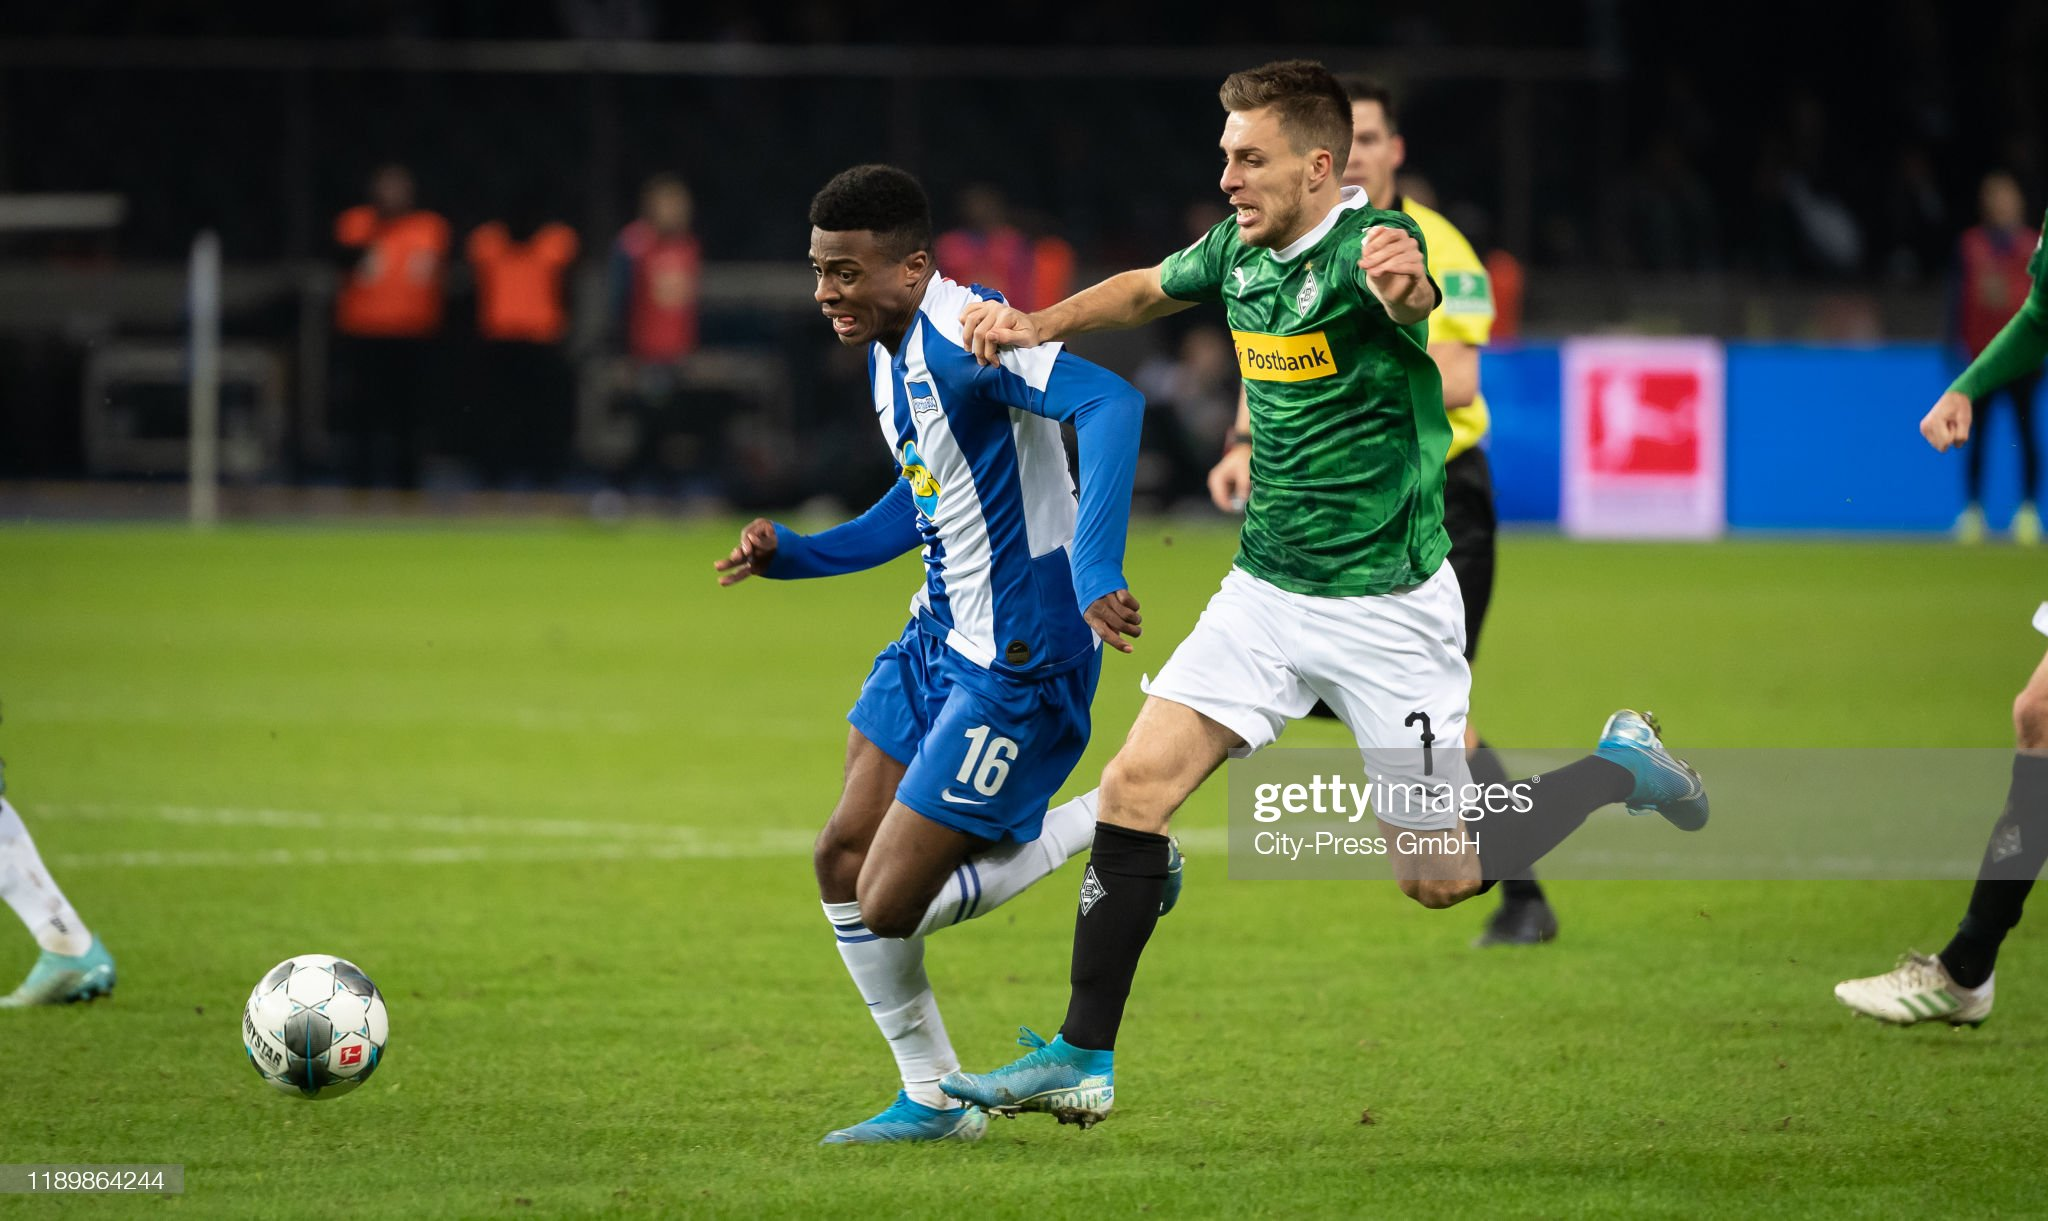 Monchengladbach vs Hertha Berlin Preview, prediction and odds